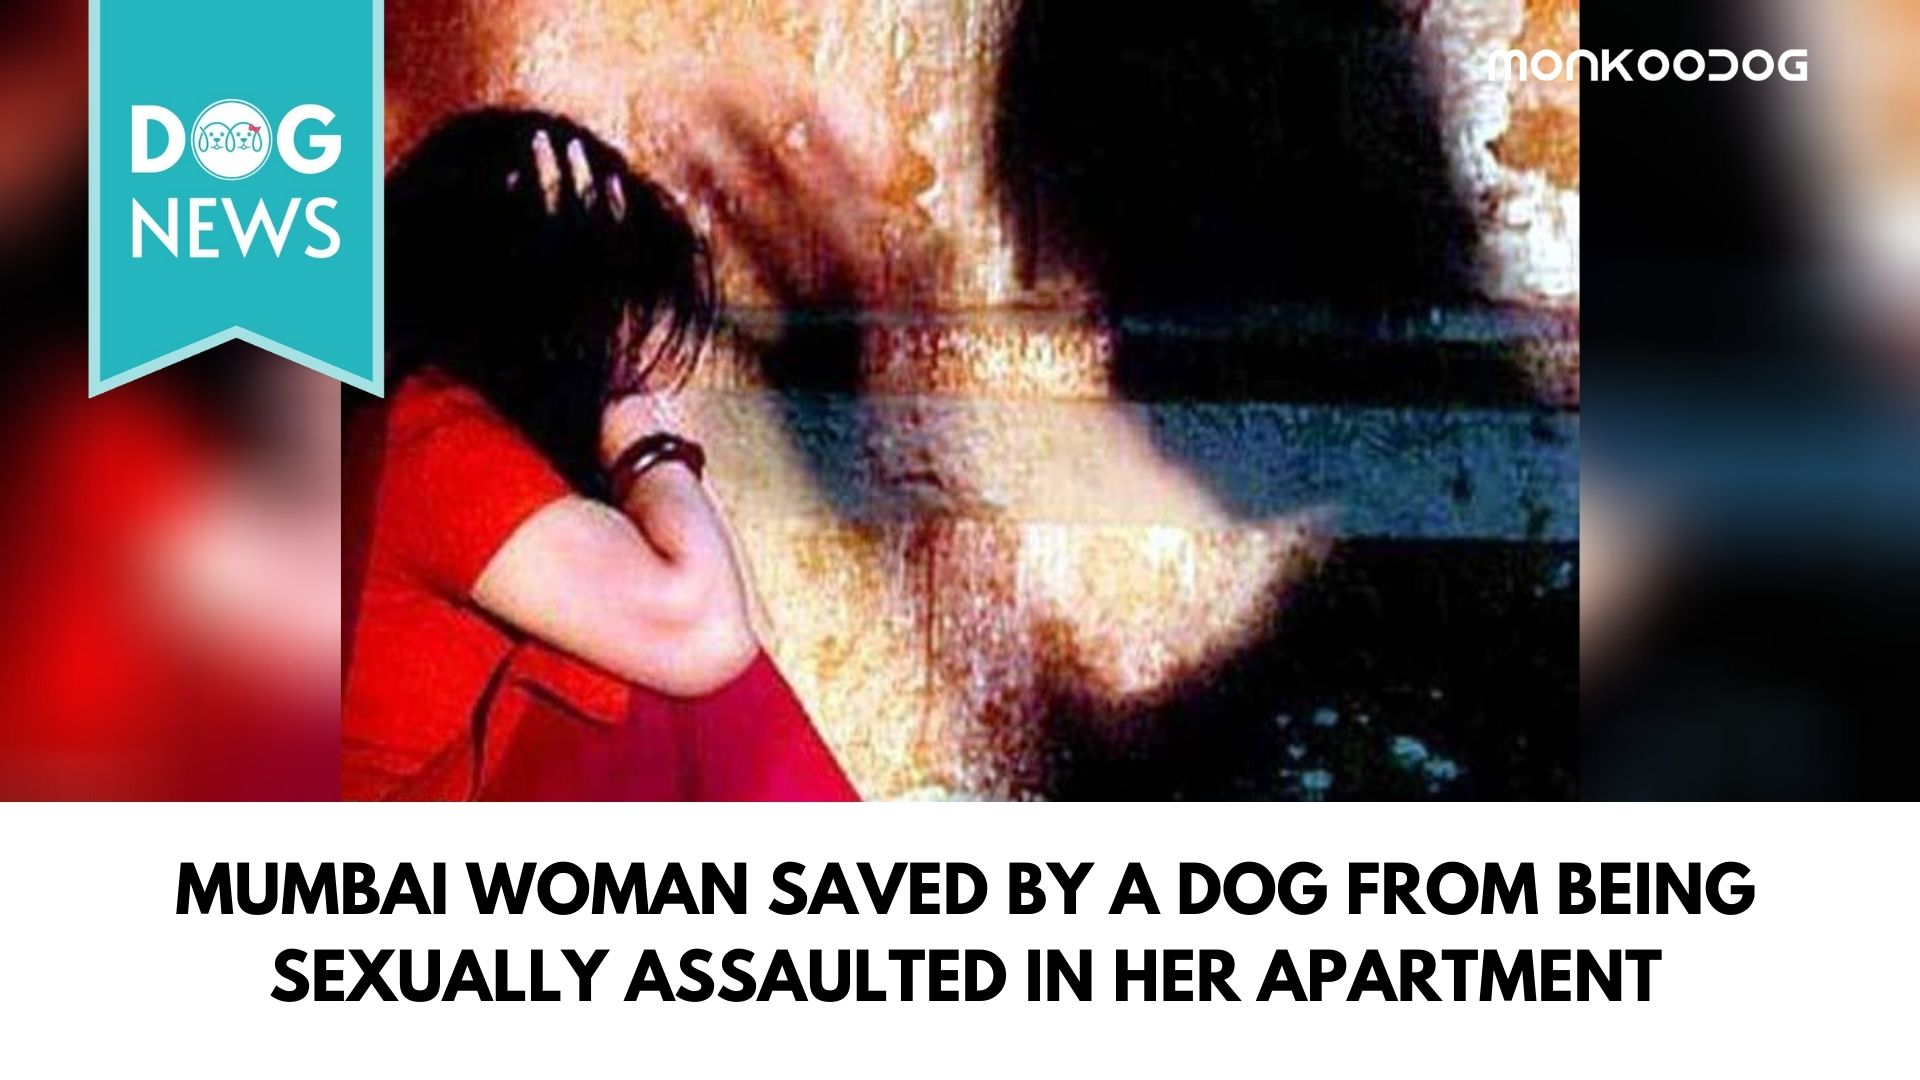 Mumbai woman saved by a dog from being sexually assaulted in her apartmentMumbai woman saved by a dog from being sexually assaulted in her apartment